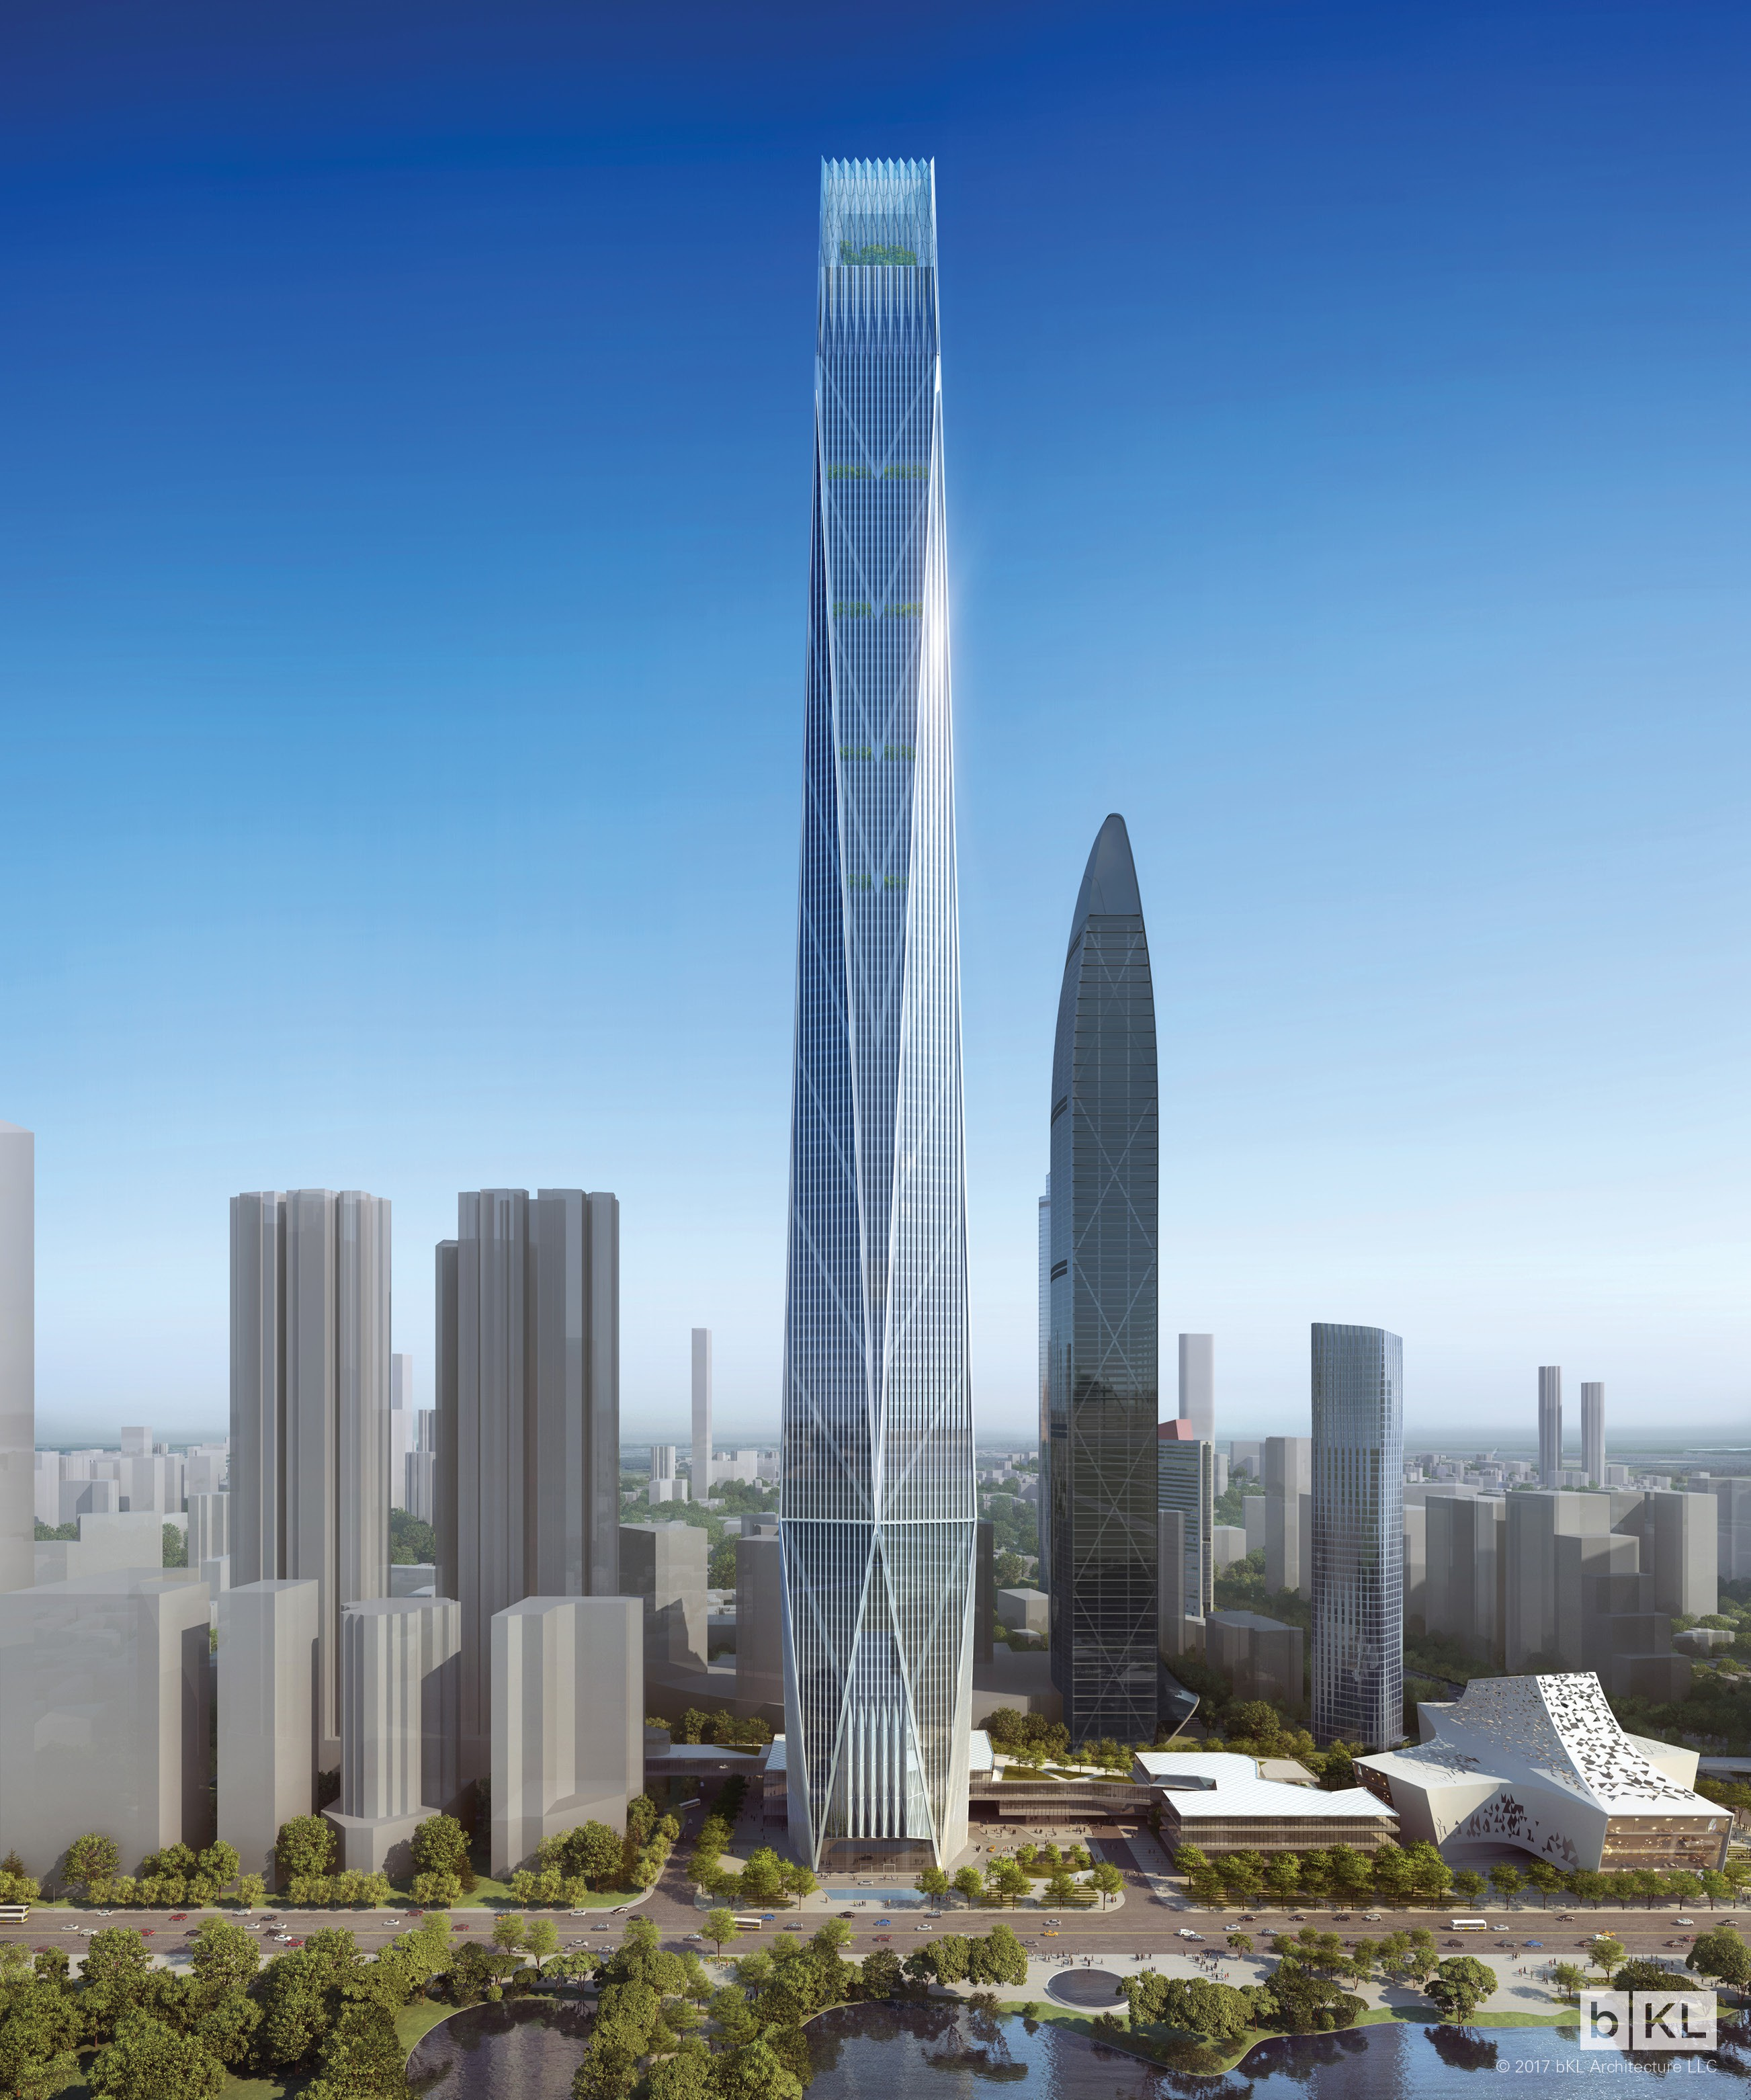 Vauxhall Partners List Of Companies Shenzhen Tower The Skyscraper Center